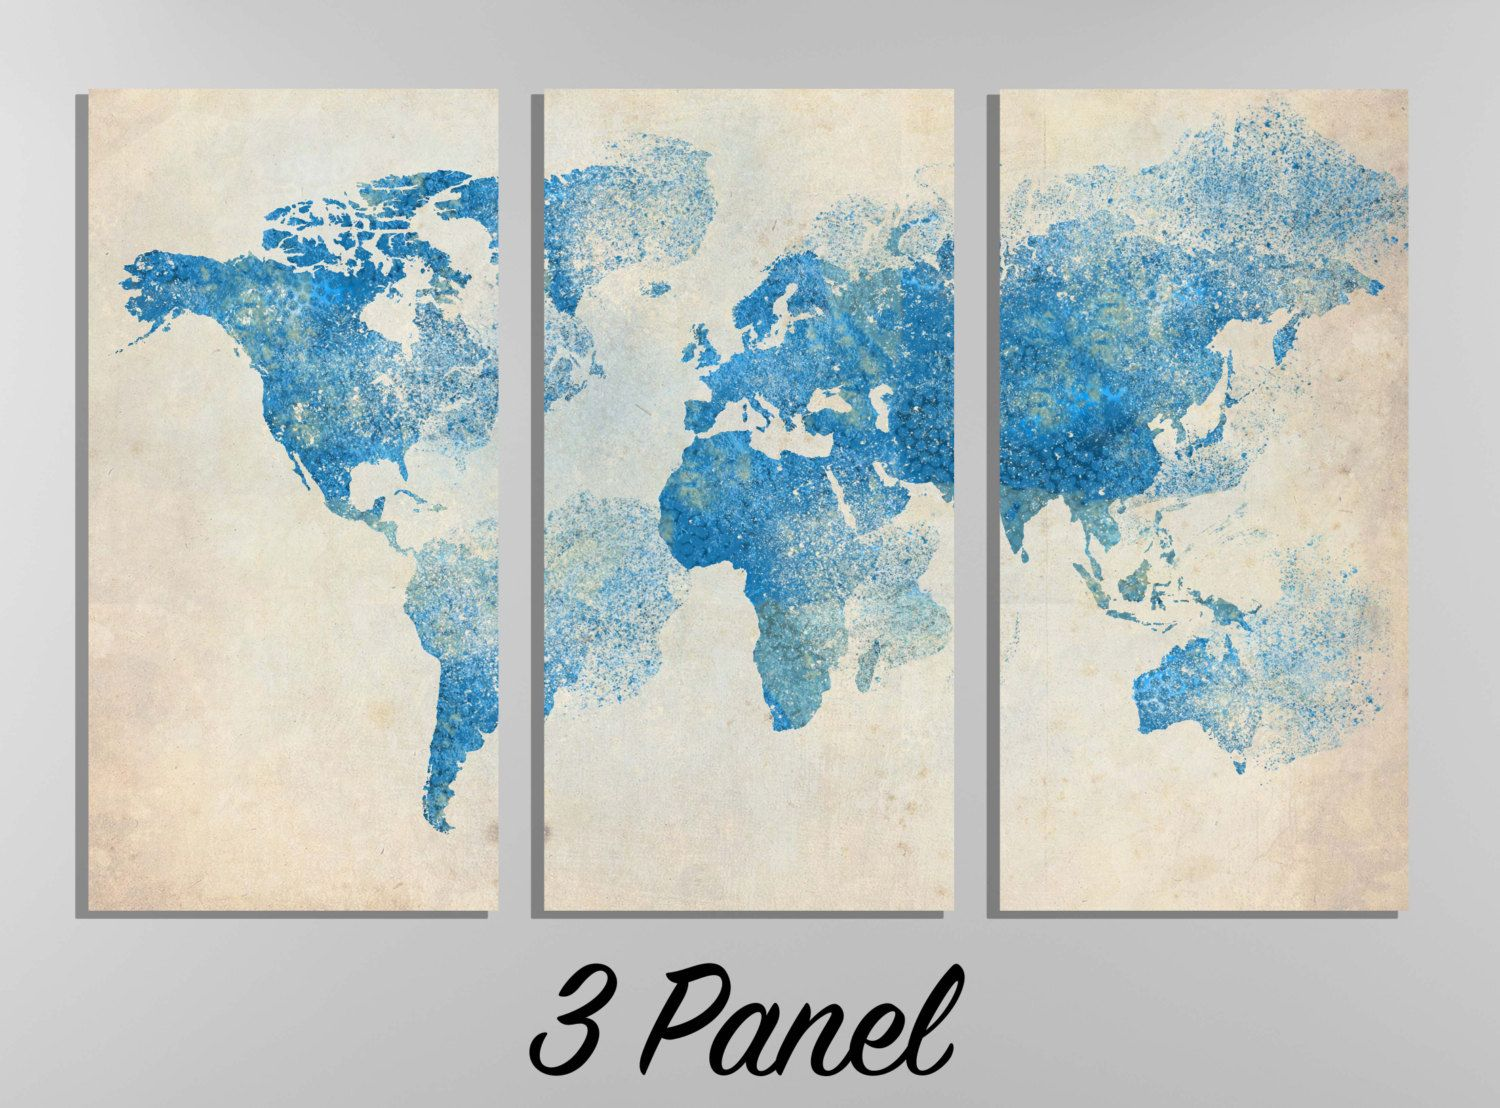 Blown away world map wall canvas gallery wrap blue by wallmac on blown away world map wall canvas gallery wrap blue by wallmac on etsy gumiabroncs Choice Image